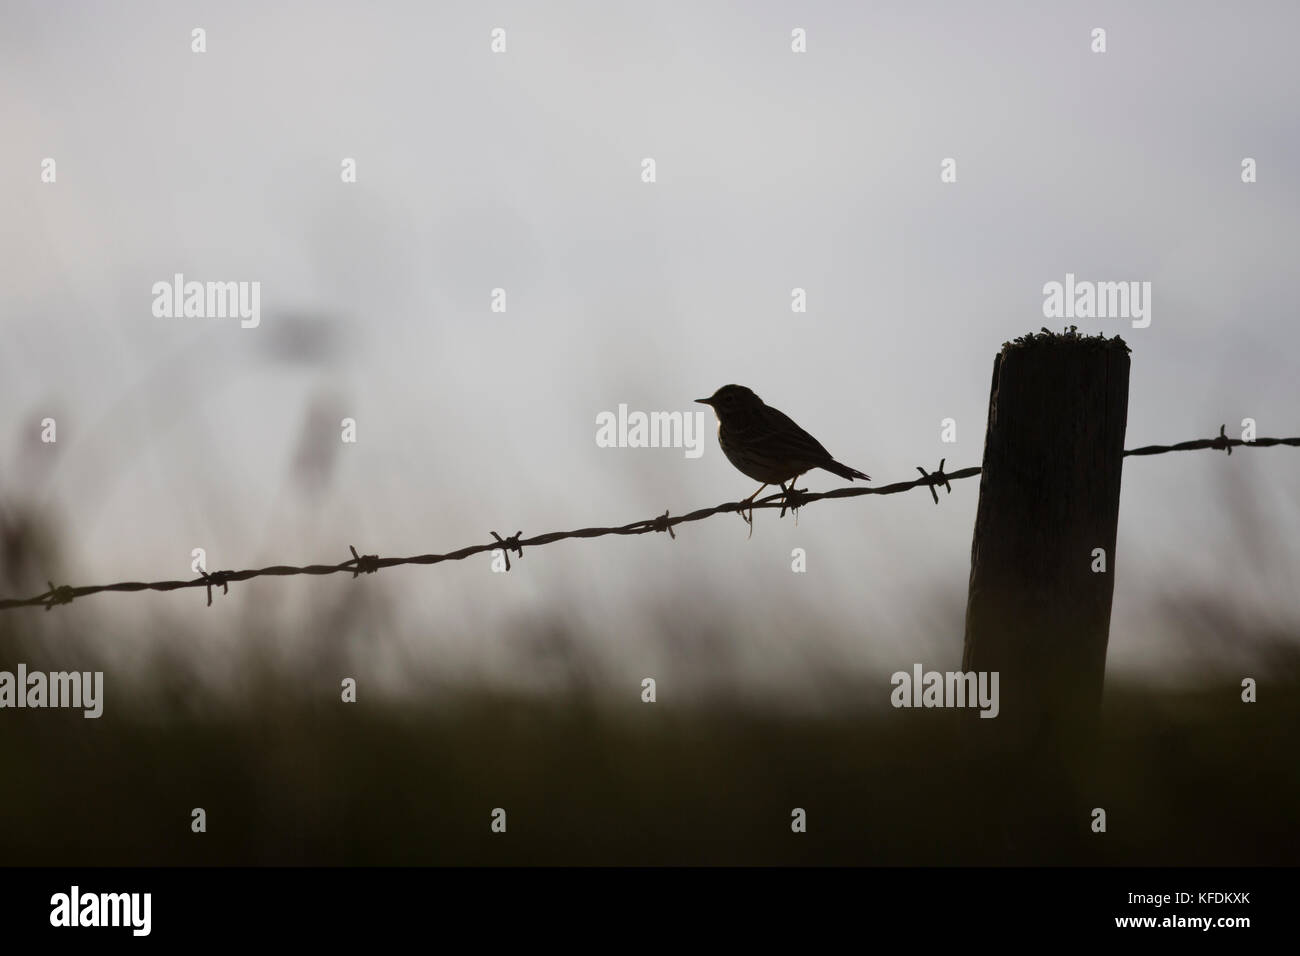 Silhouette Bird Barbed Wire Stock Photos & Silhouette Bird Barbed ...